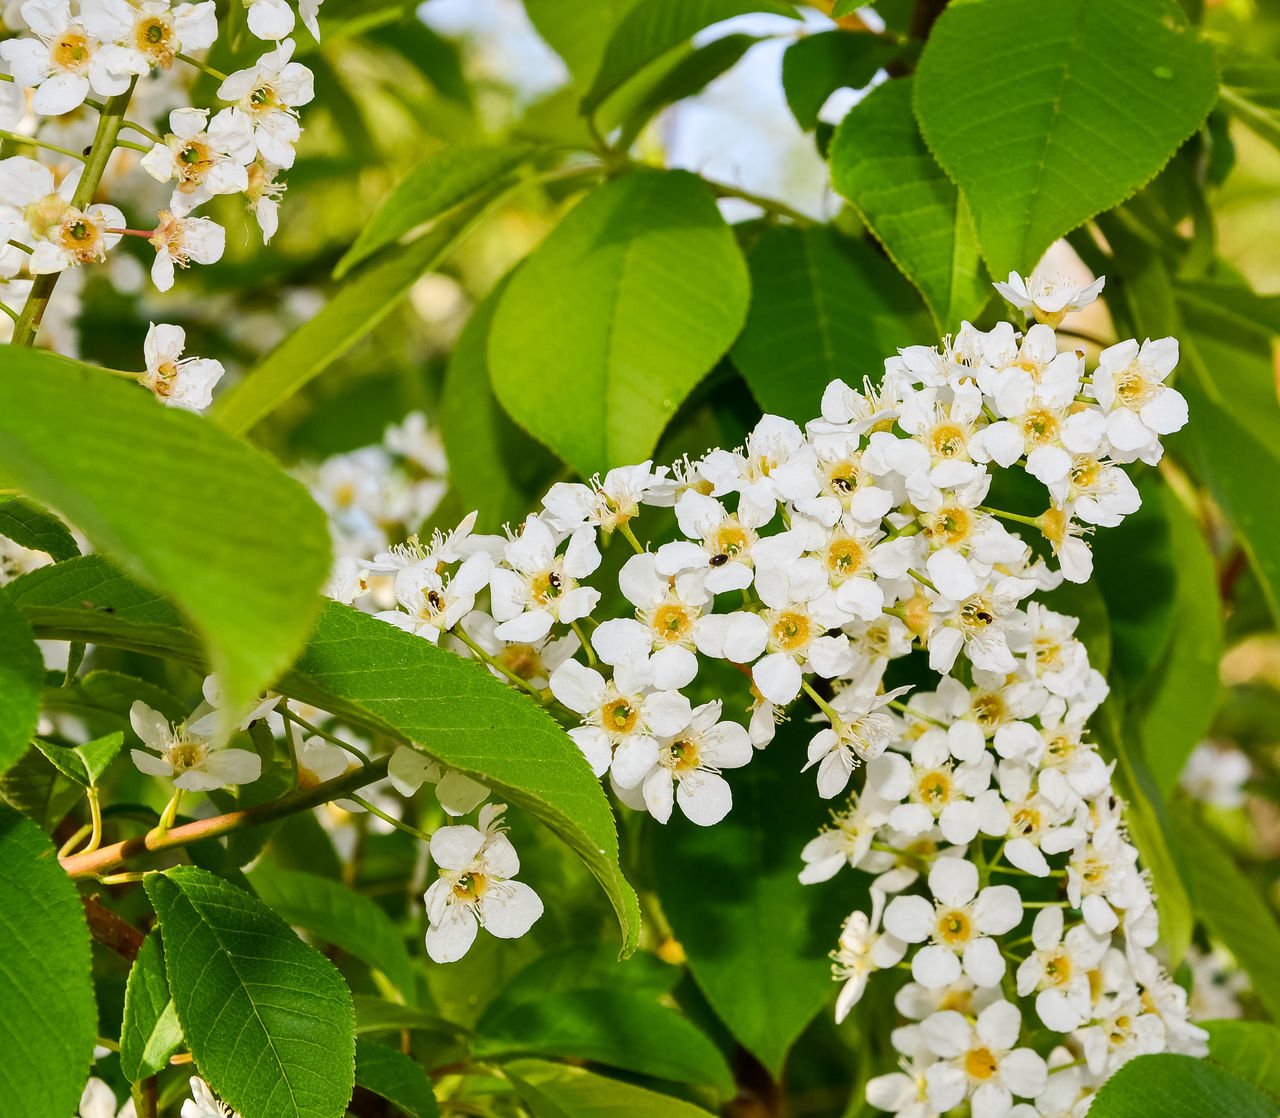 Background of blooming bird cherry in early spring Beauty In Nature Bird Cherry Tree Blooming Blossom Branch Close-up Day Flower Flower Head Fragility Freshness Green Green Color Growth Hackberry Leaf Nature No People Outdoors Petal Plant Springtime Tree White Color White Flower